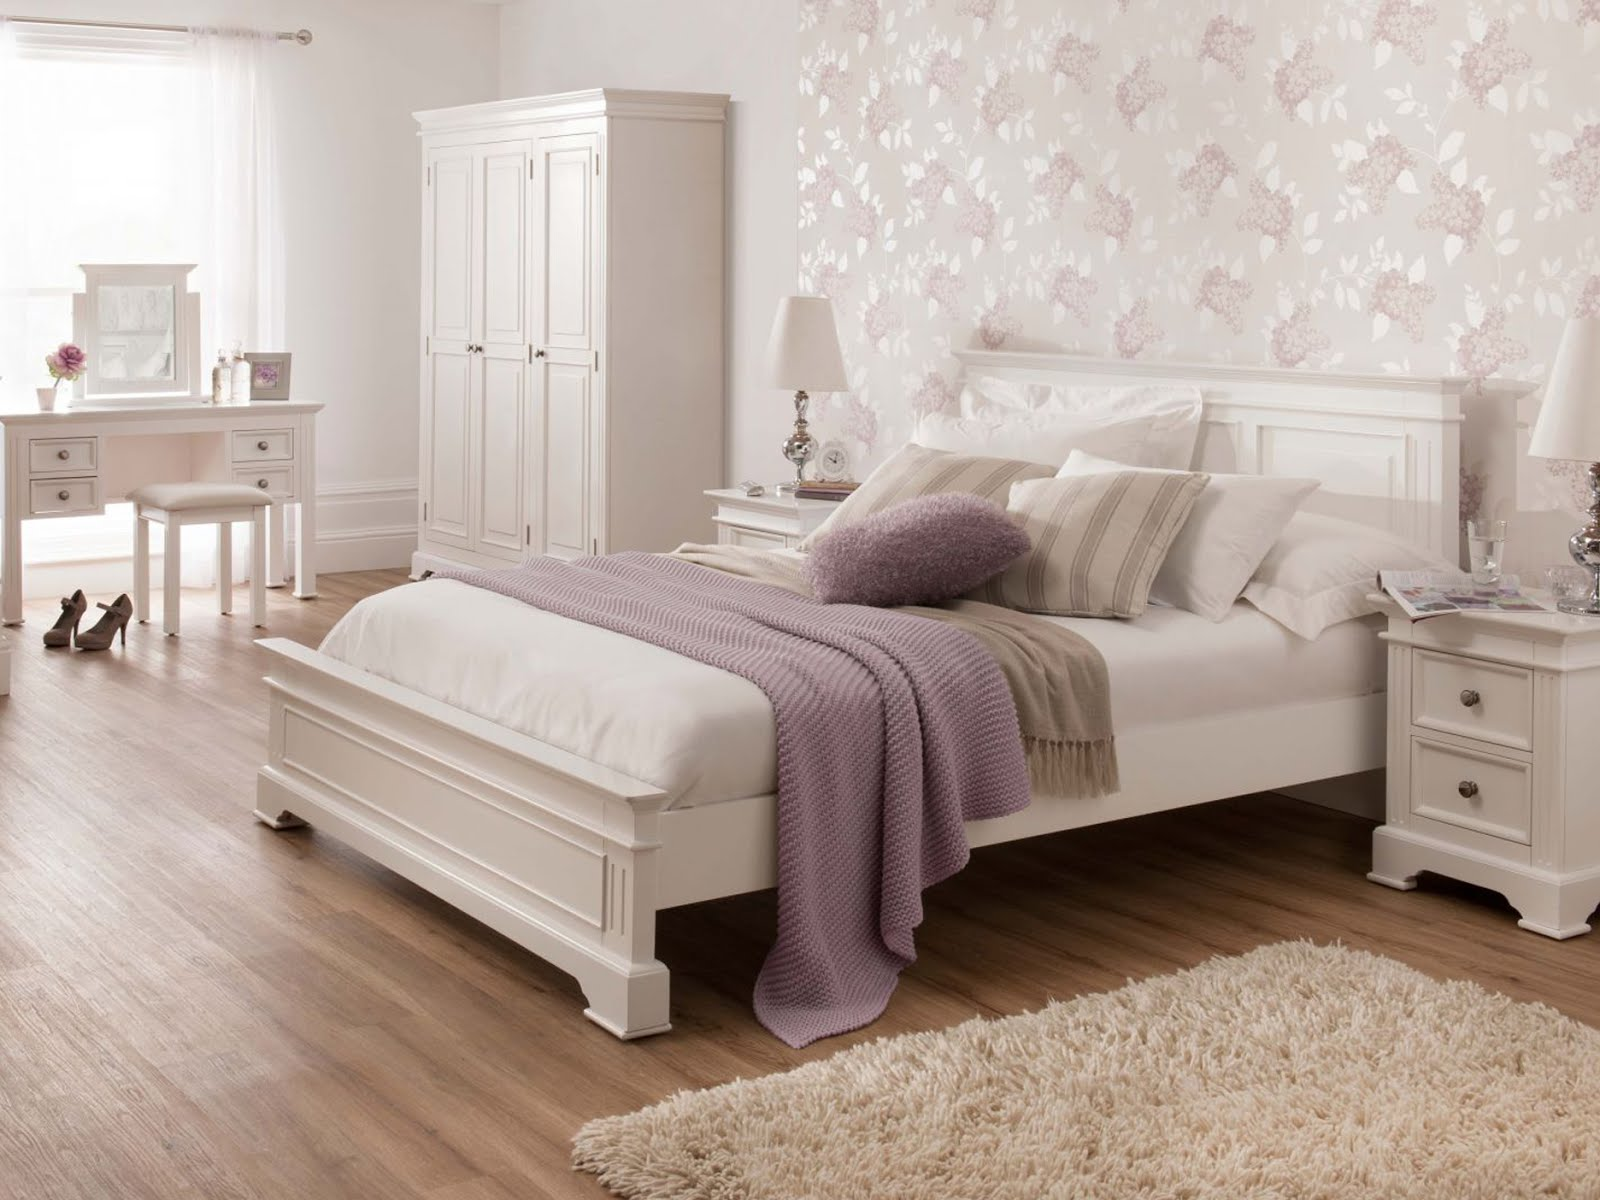 FURNITURE KAMAR MINIMALIS